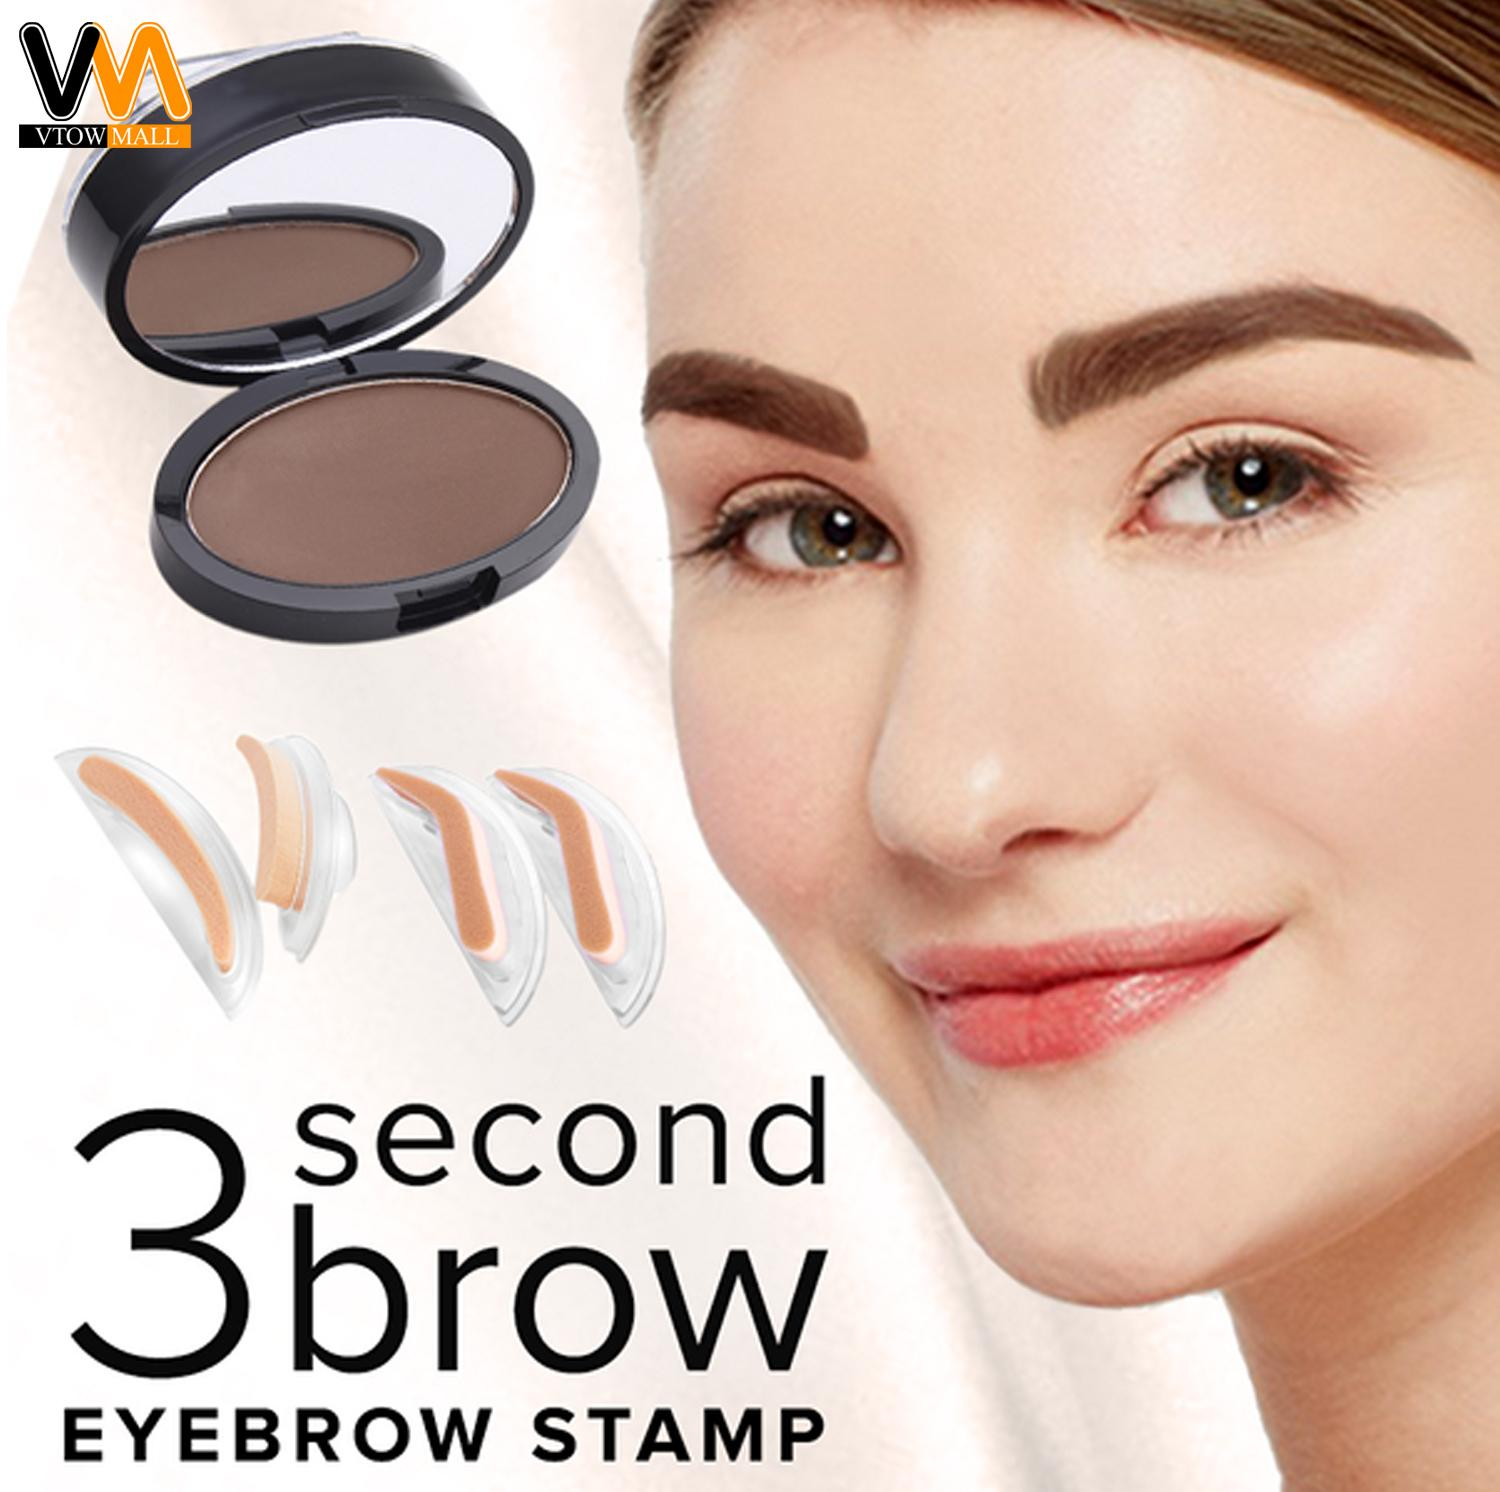 Eyebrow Stamp 3 Second Brow Natural Look Eyebrow Dark Brown Philippines